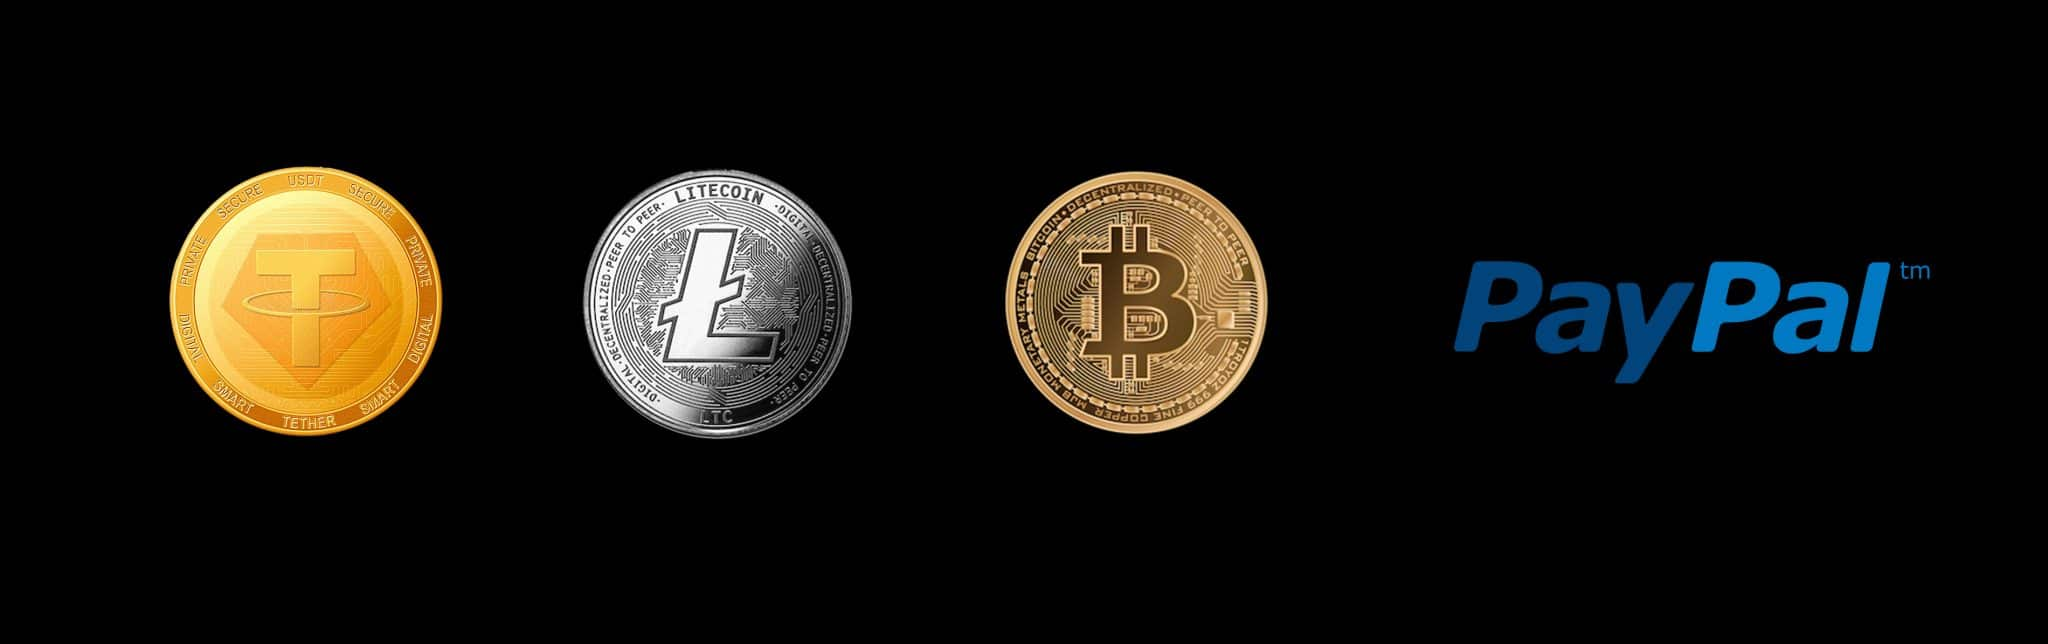 Payments tether bitcoin litecoin PayPal